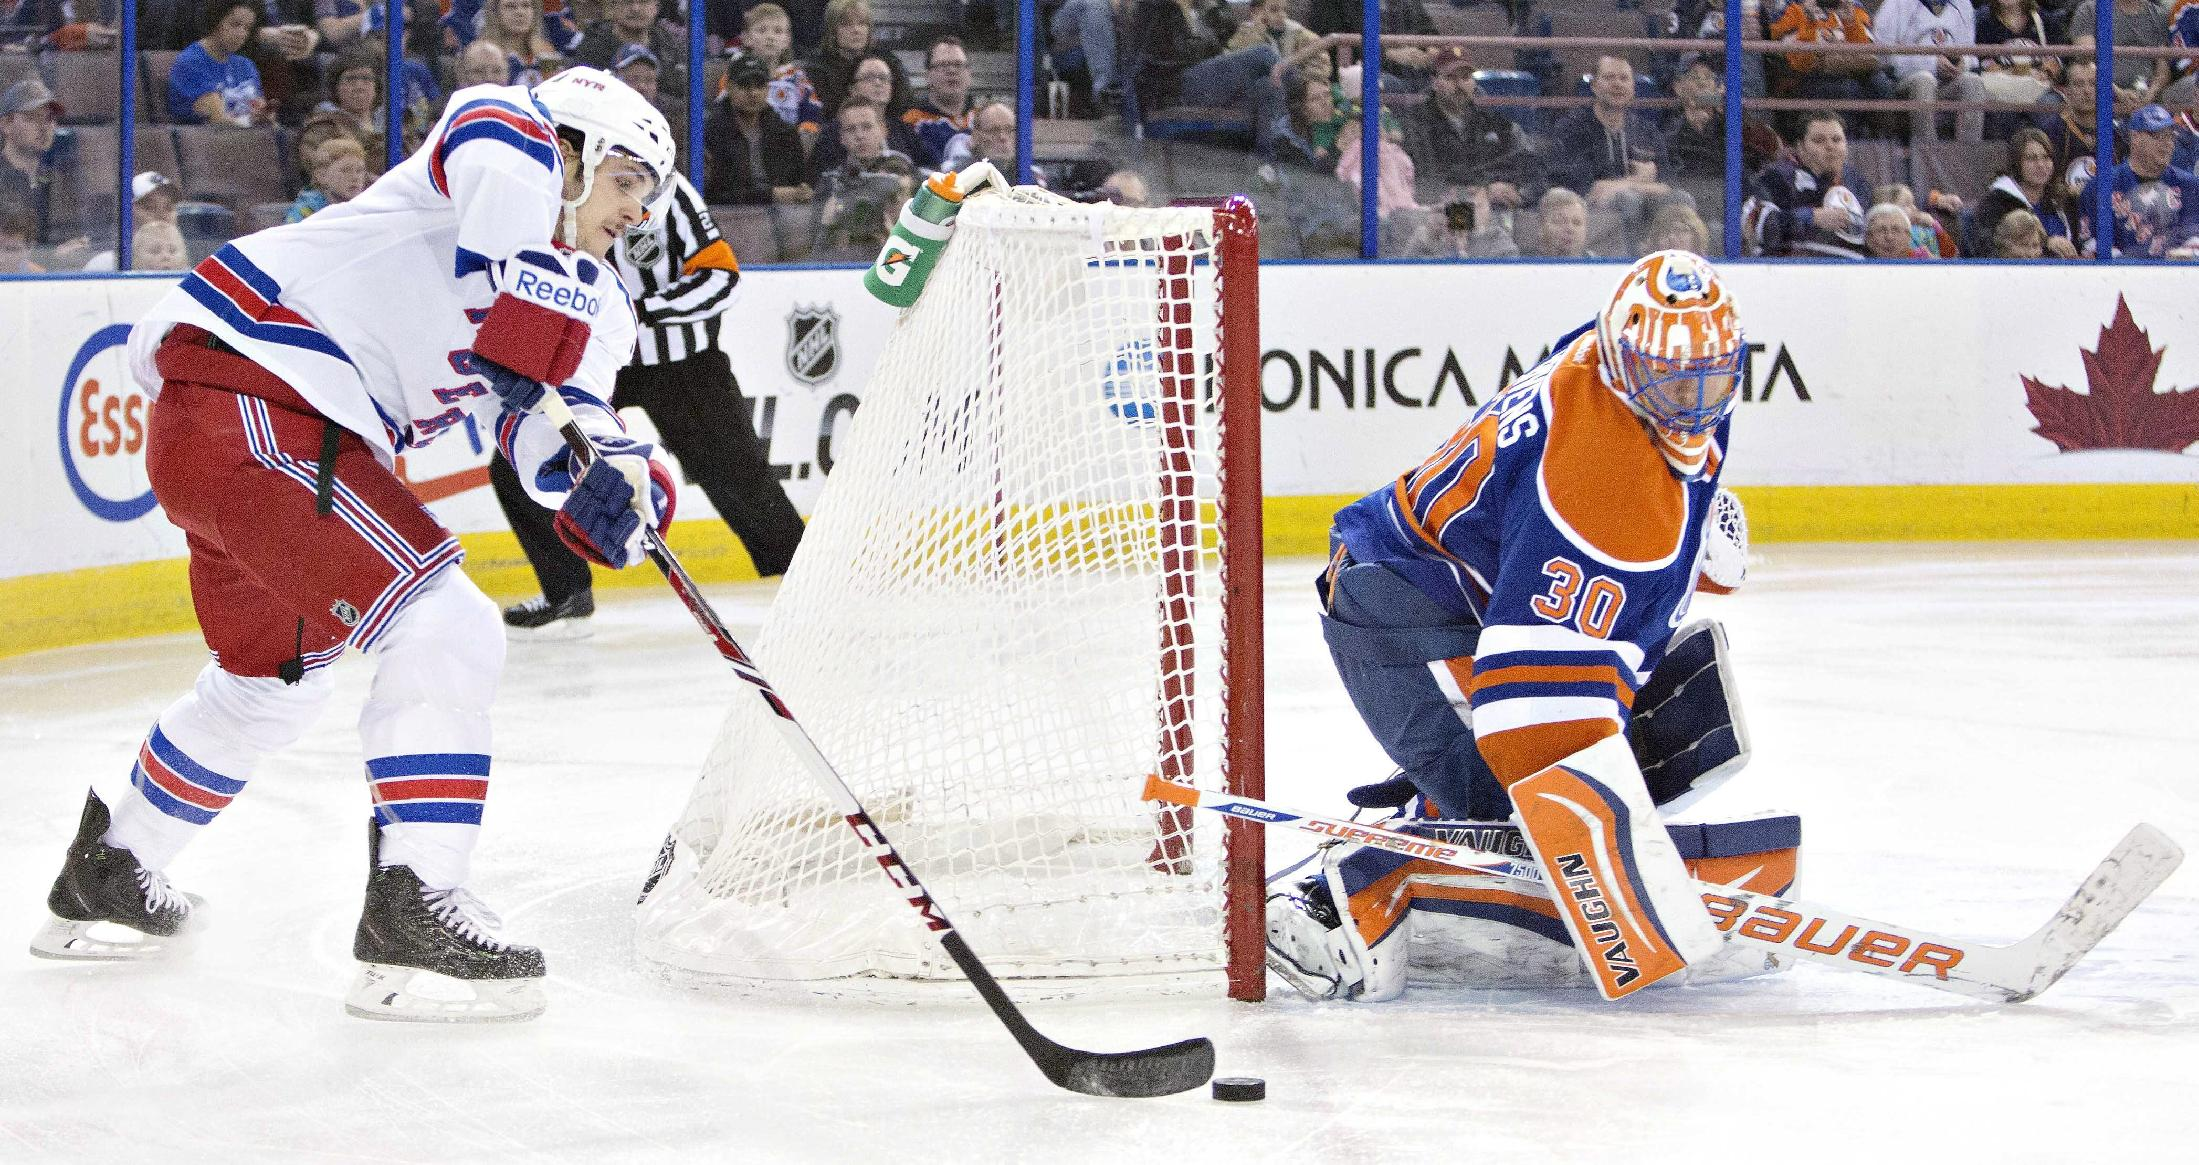 New York Rangers Daniel Carcillo (13) is stopped by Edmonton Oilers Ben Scrivens (30) during first period NHL hockey action in Edmonton, Alberta., on Sunday March 30, 2014